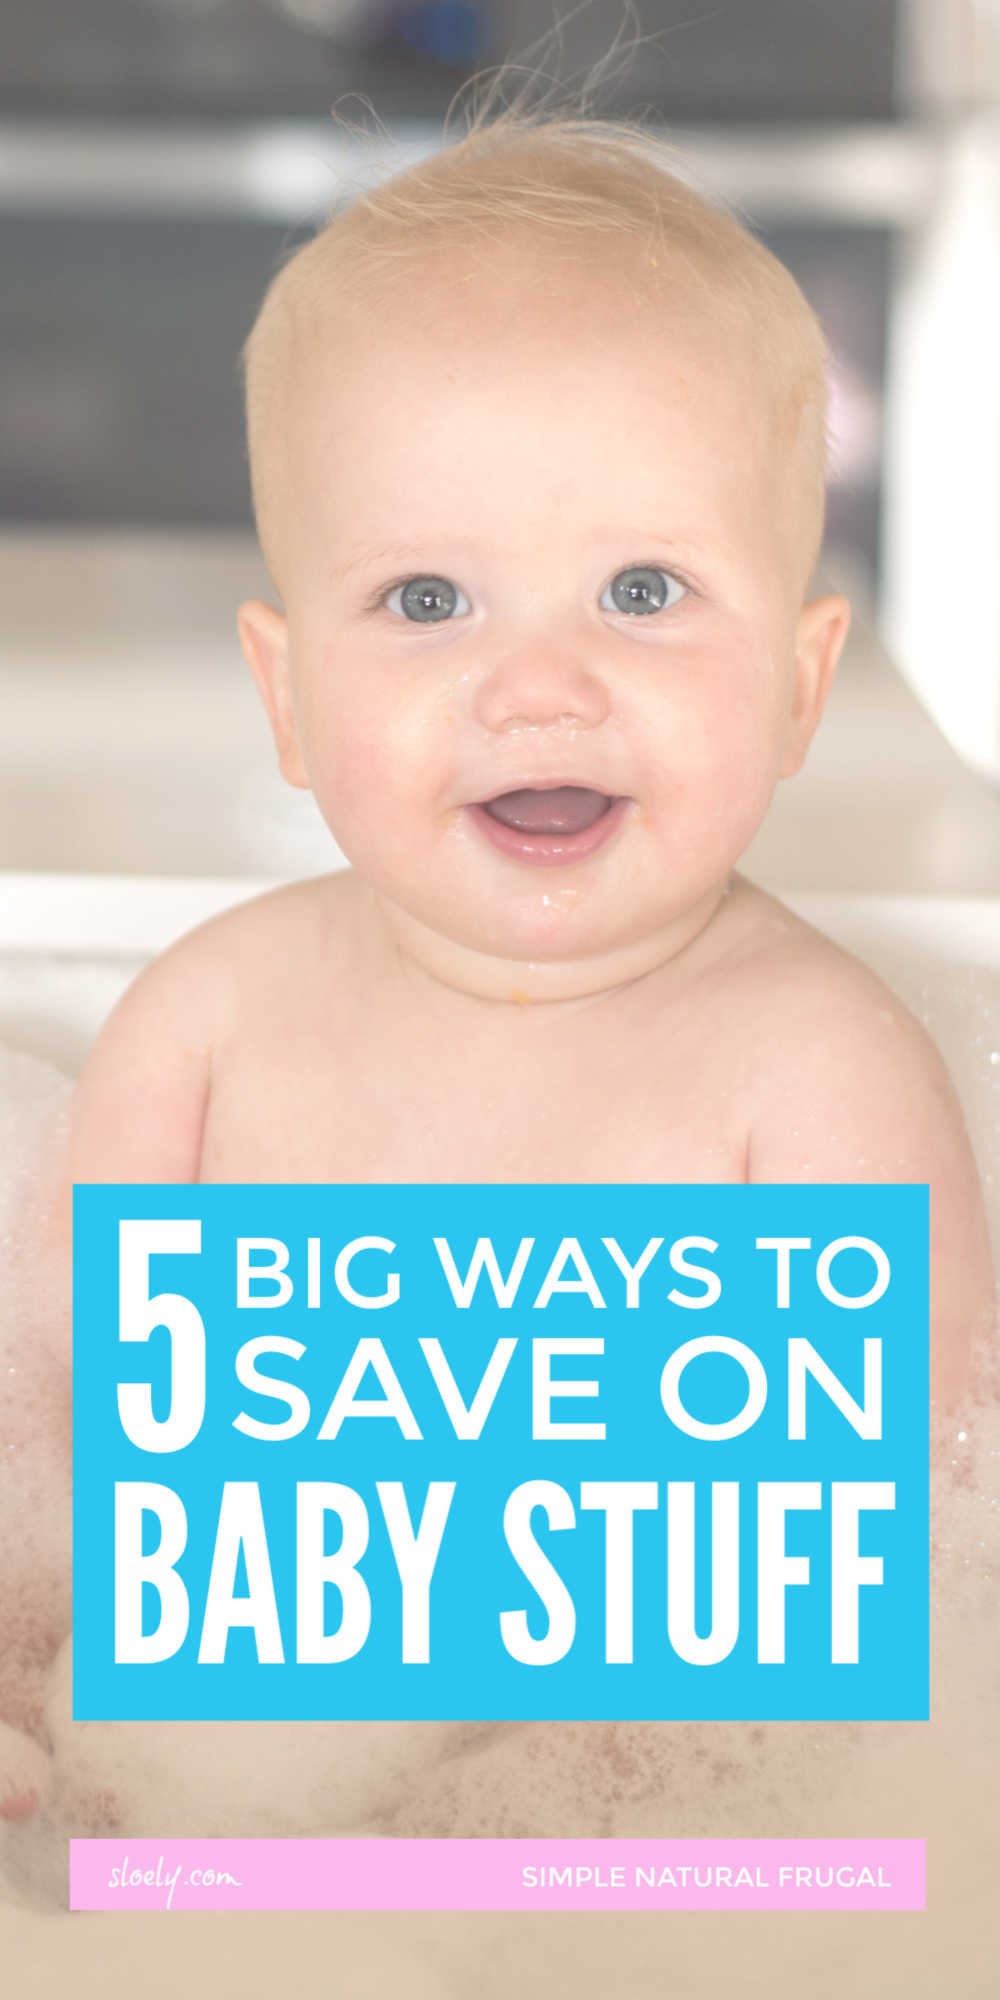 Best Ways To Save Money On Baby Stuff